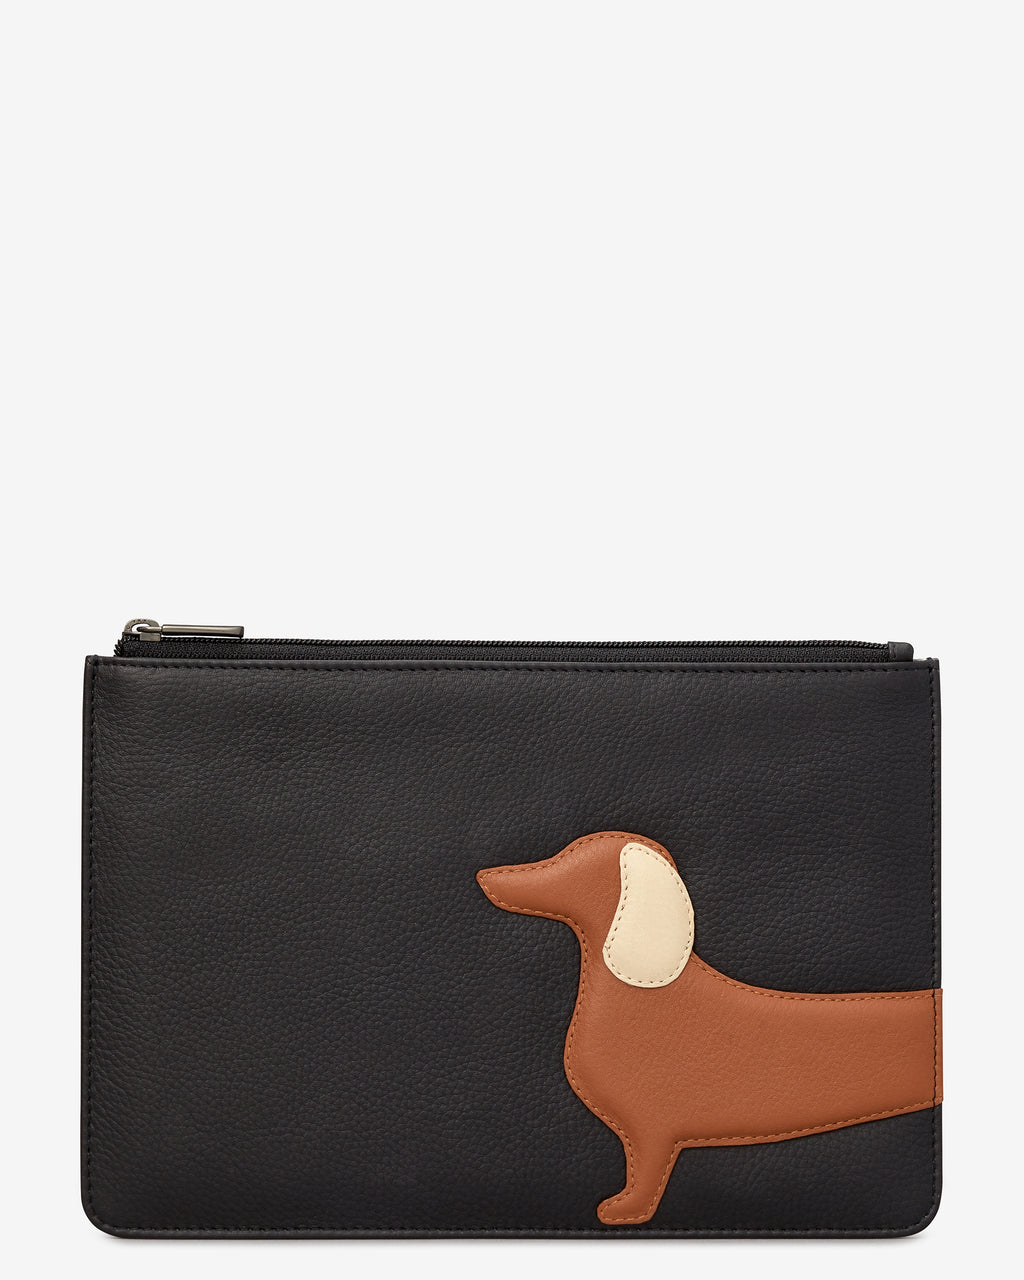 Digby the Dachshund Zip Top Leather Pouch